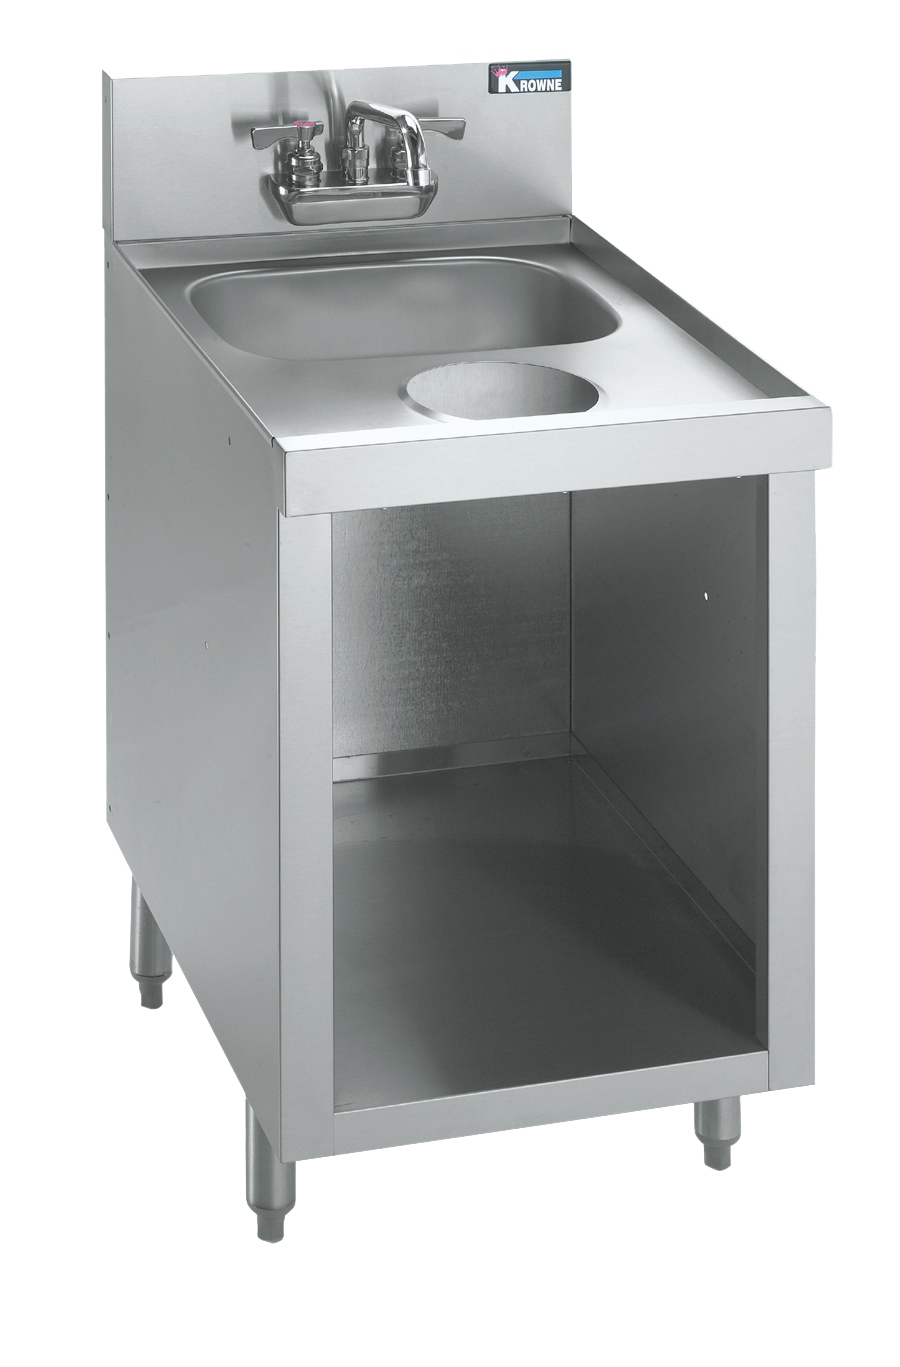 Krowne Metal KR21-SD18C underbar hand sink unit